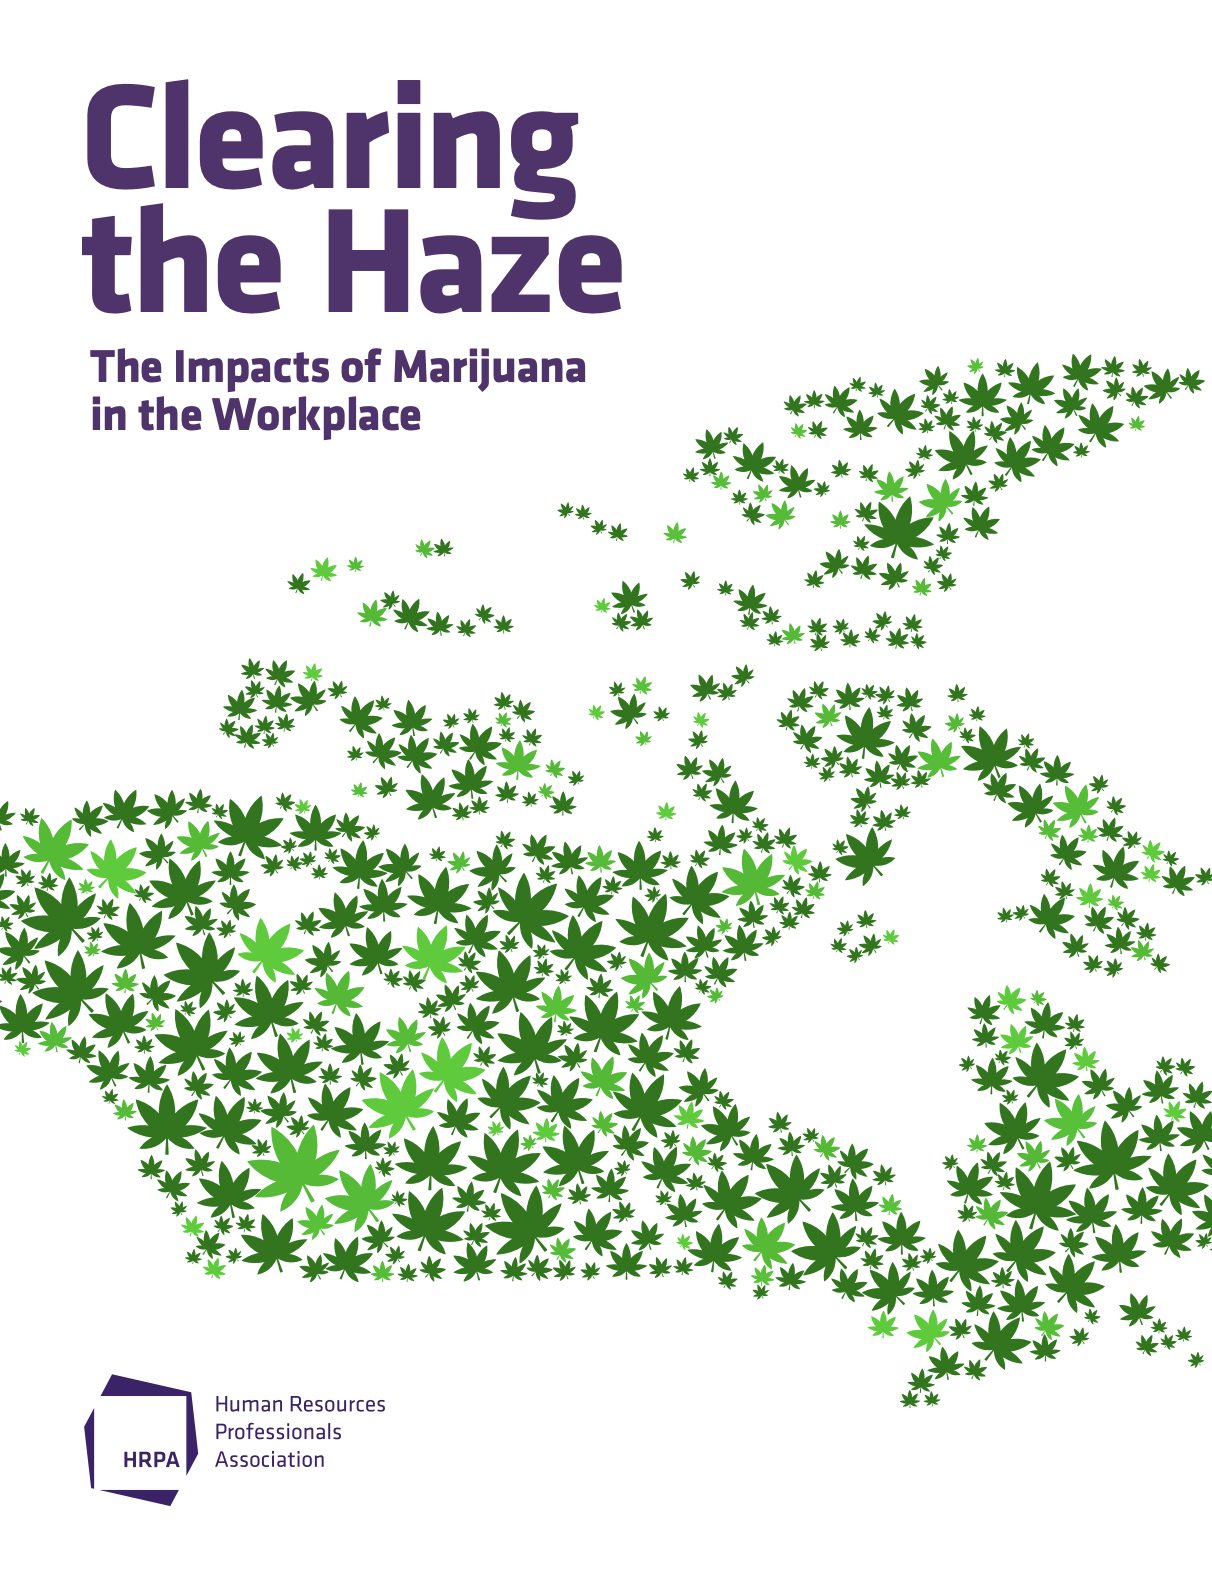 The Impacts of Marijuana in the Workplace